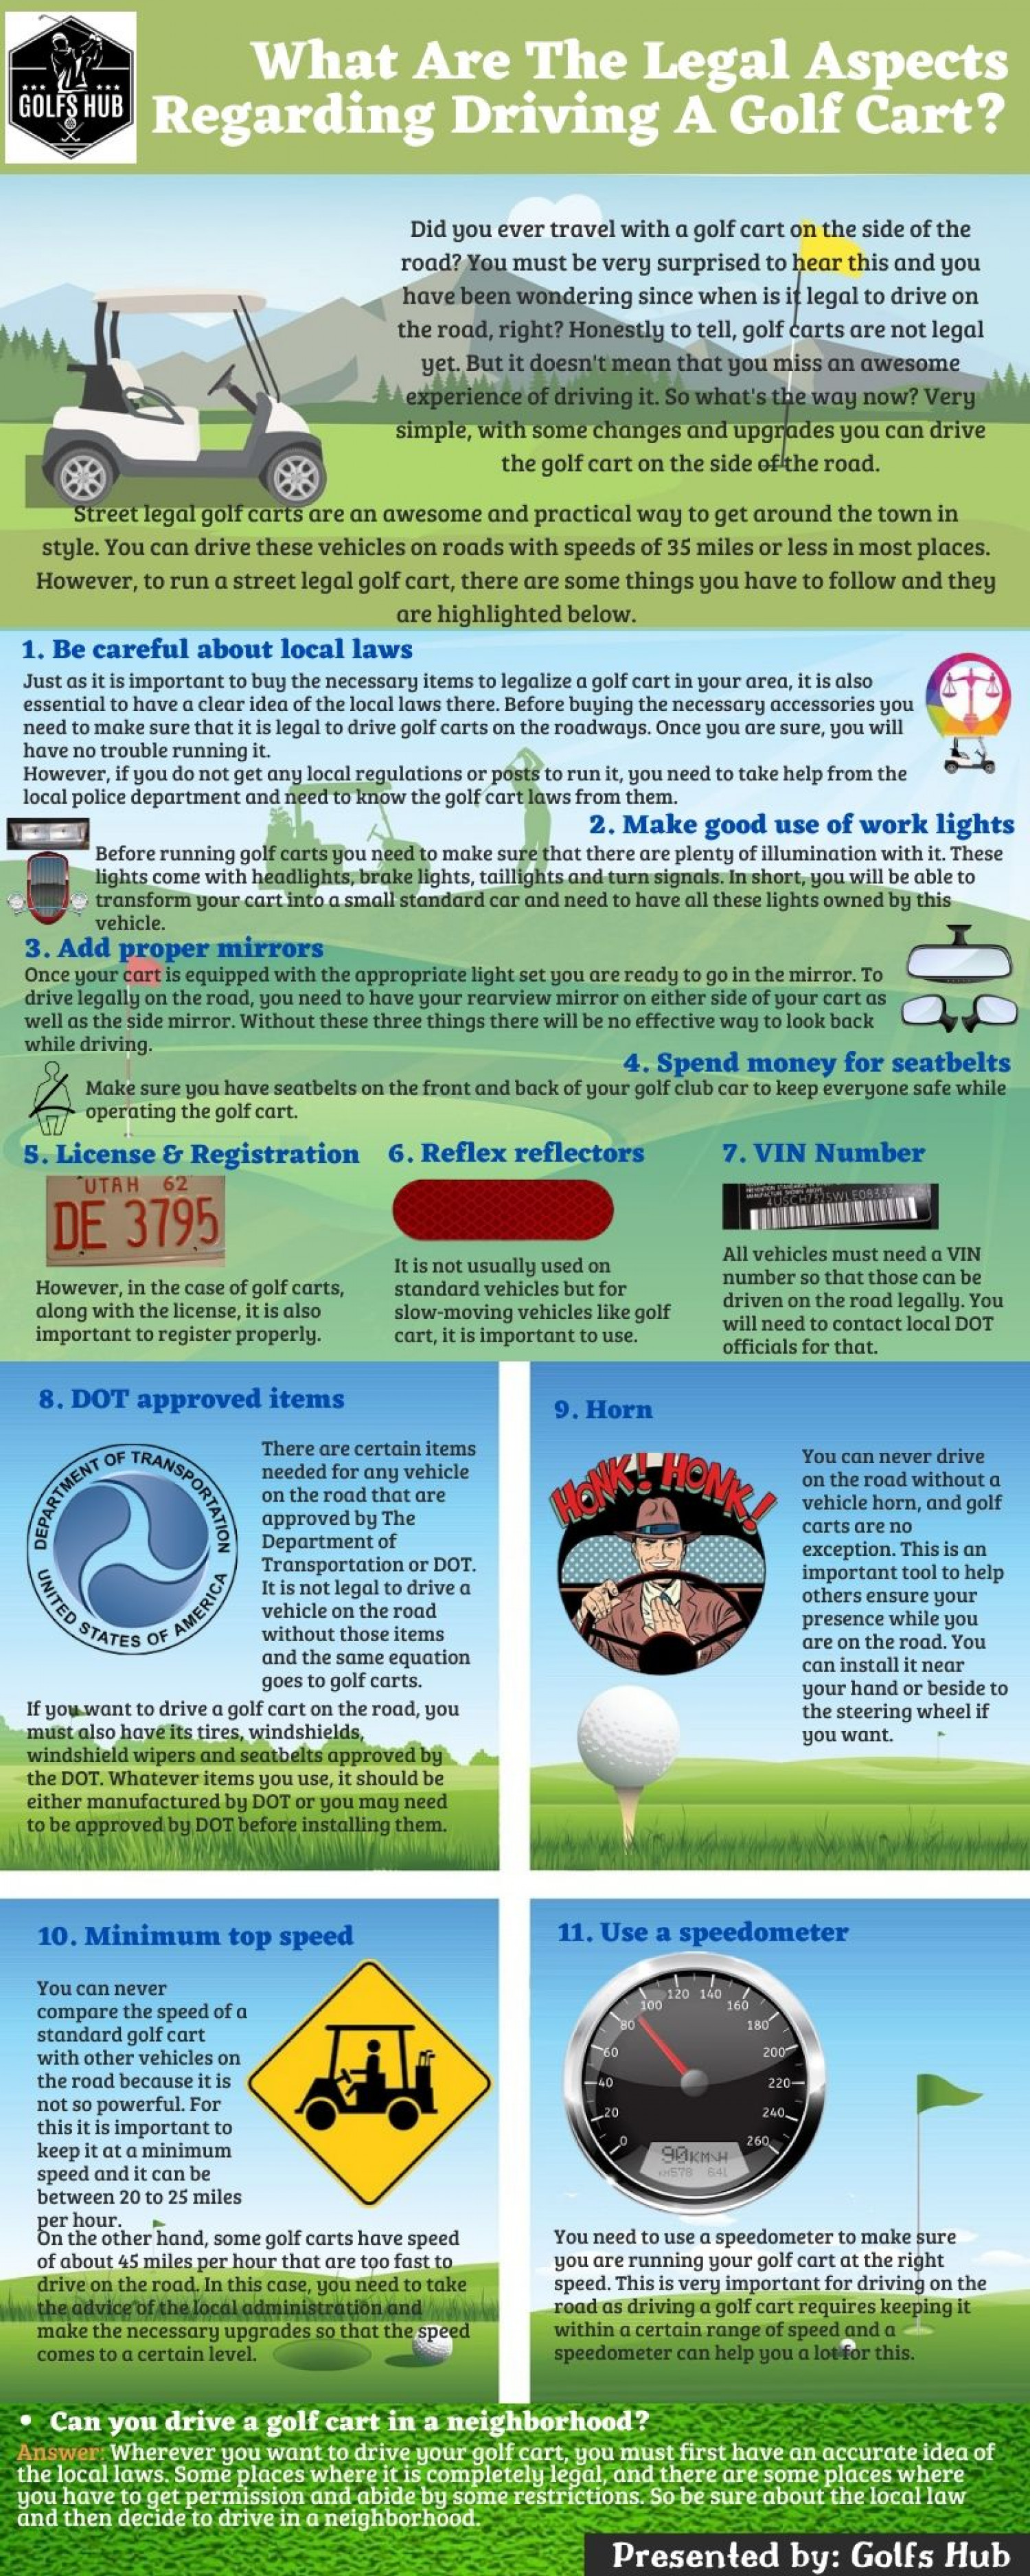 What Are The Legal Aspects Regarding Driving A Golf Cart? Infographic